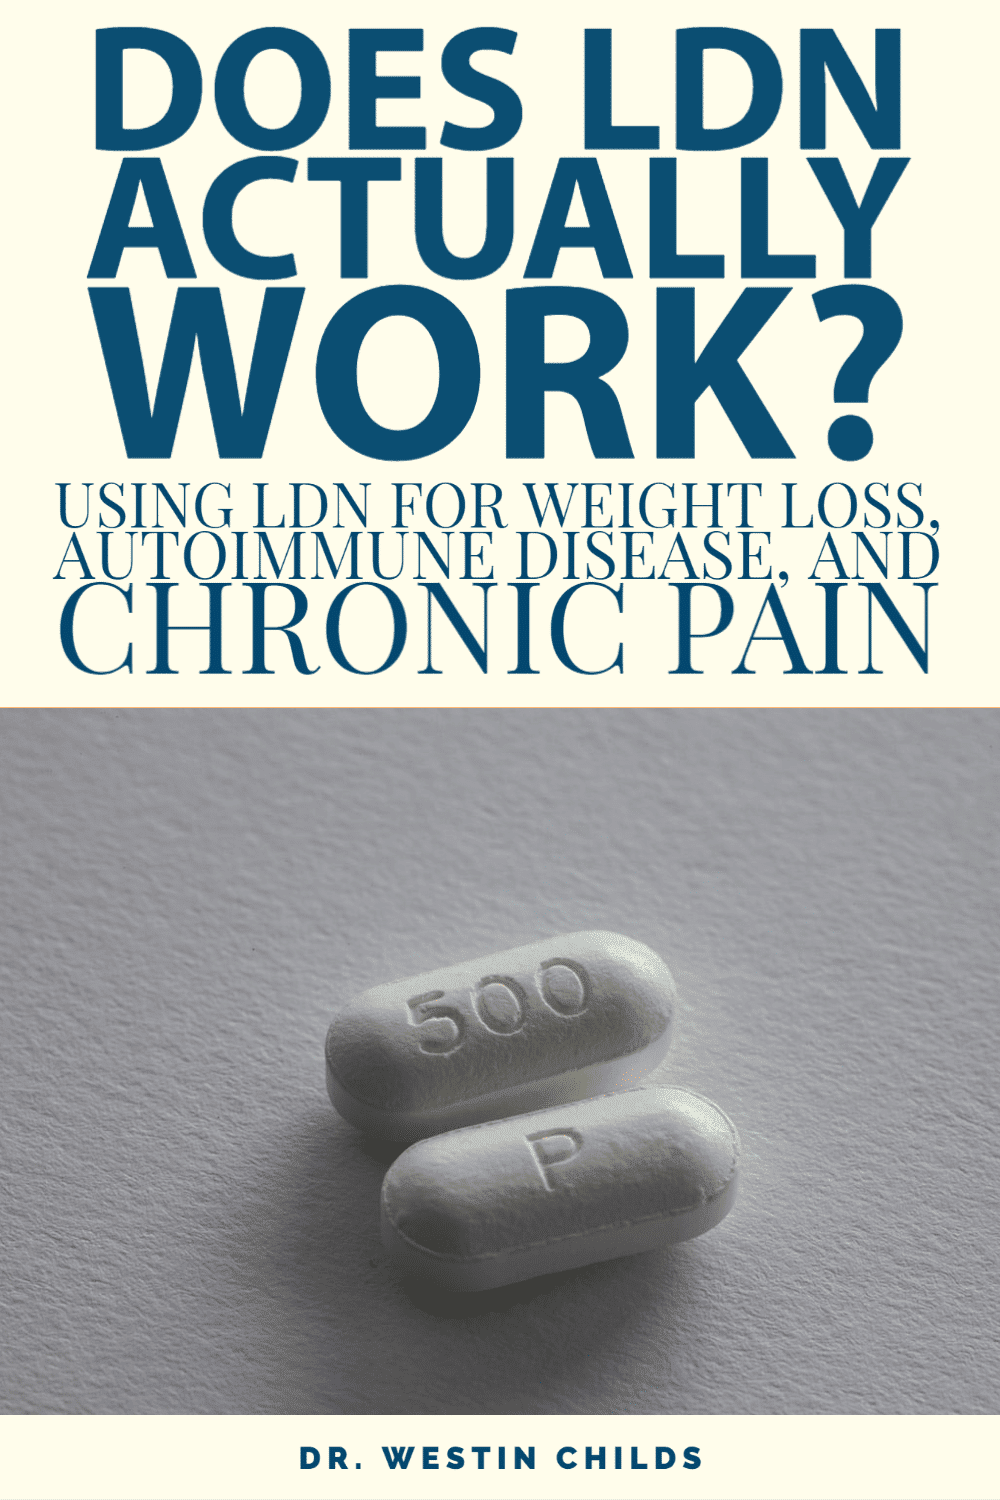 using LDN for weight loss, autoimmune disease, and pain